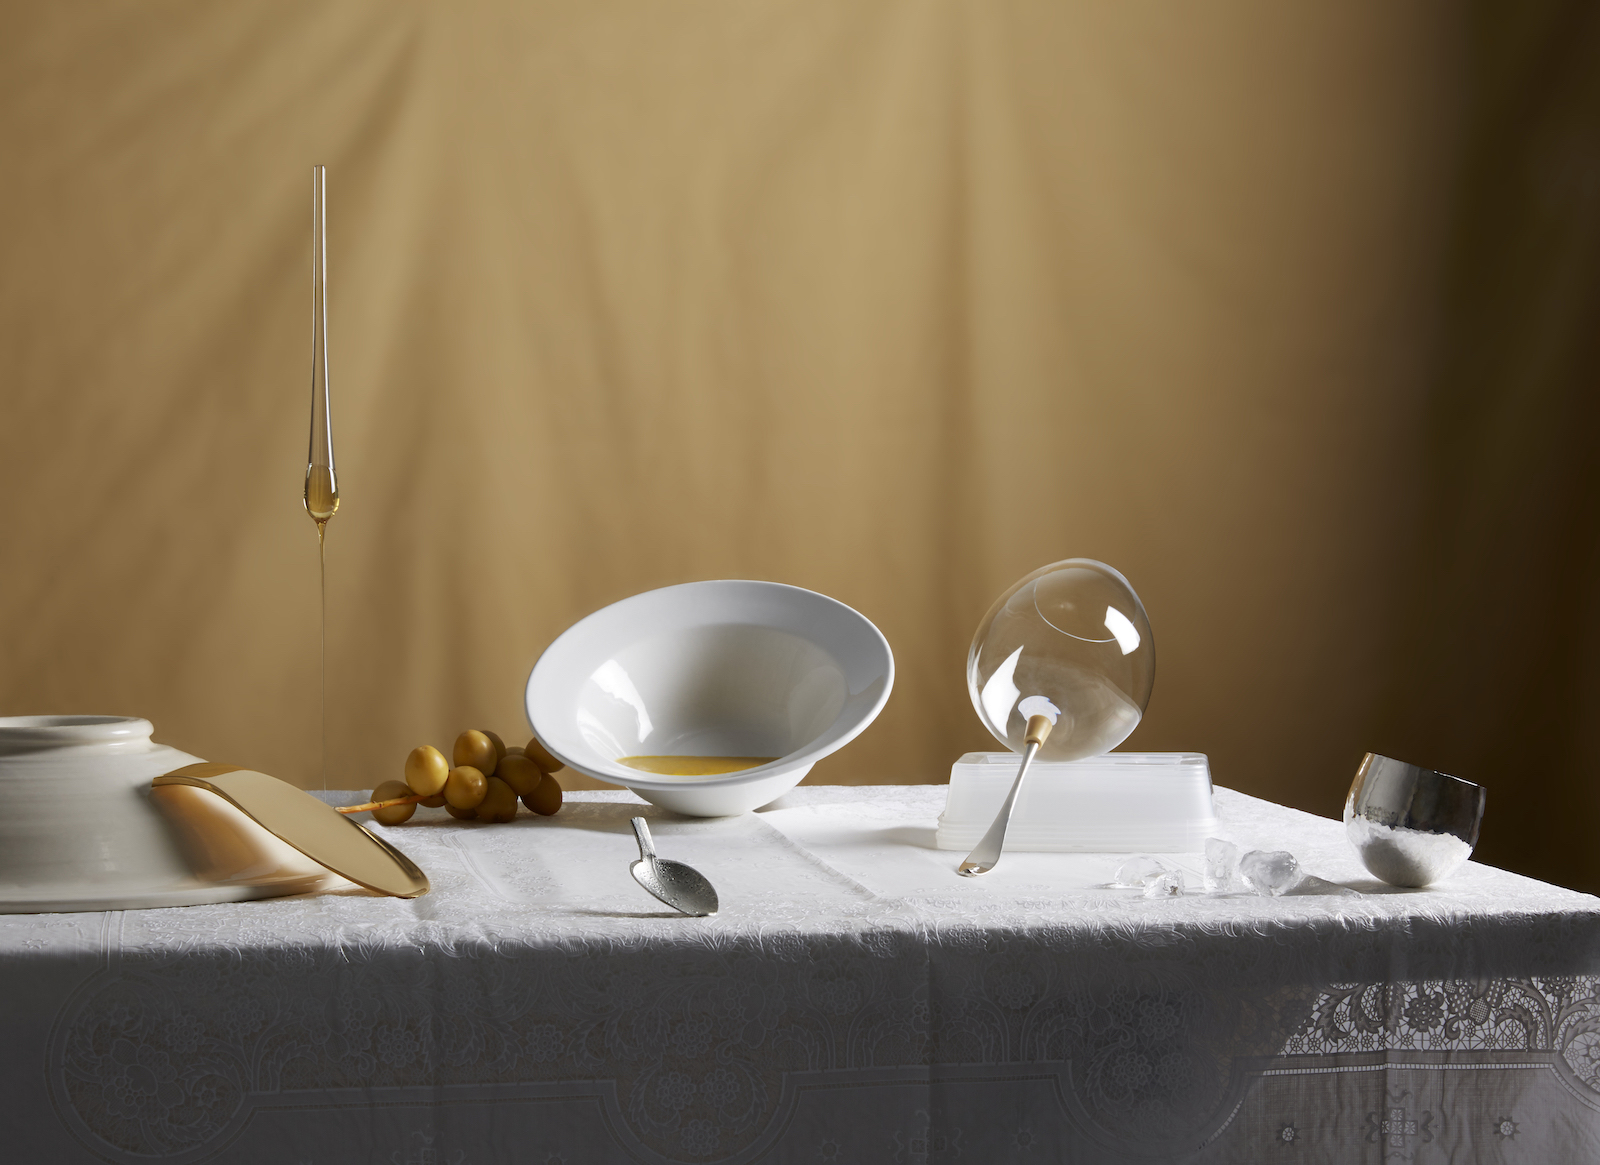 Objects designed by Michel/Fabian. Photo by Kristy Noble and styling by Olivia Bennett for MOLD Magazine.